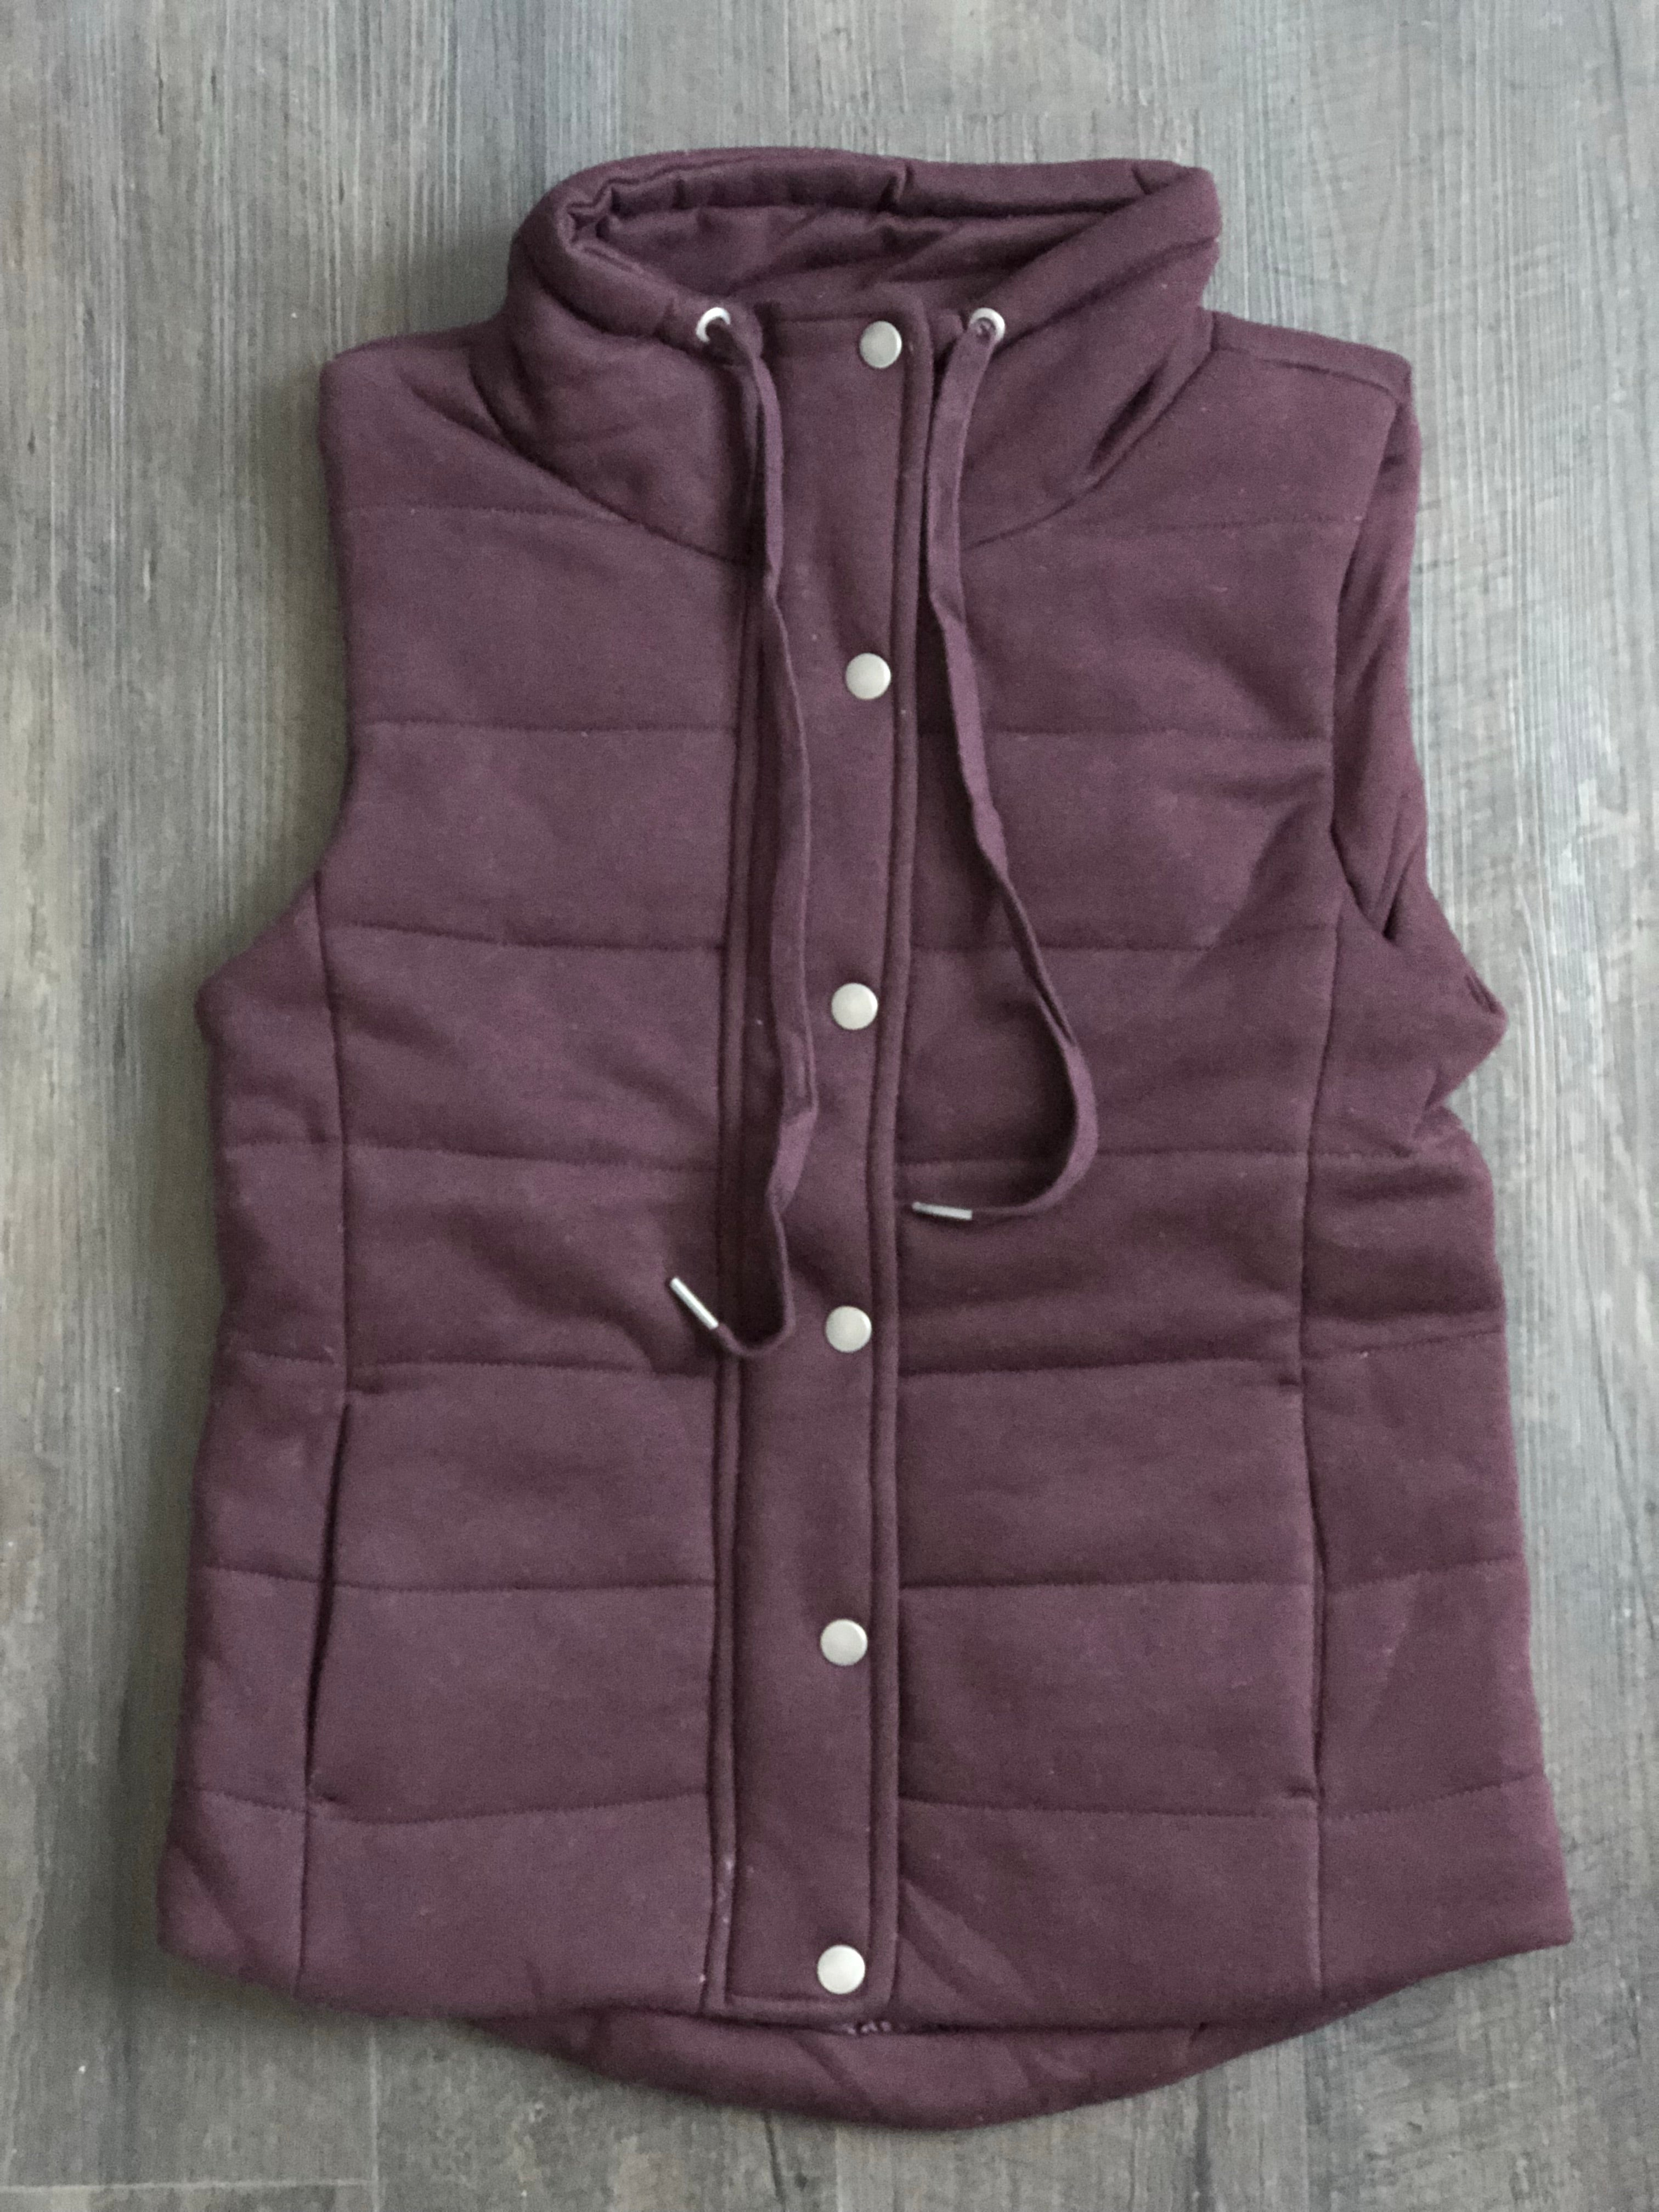 The Quilted Cotton Vest